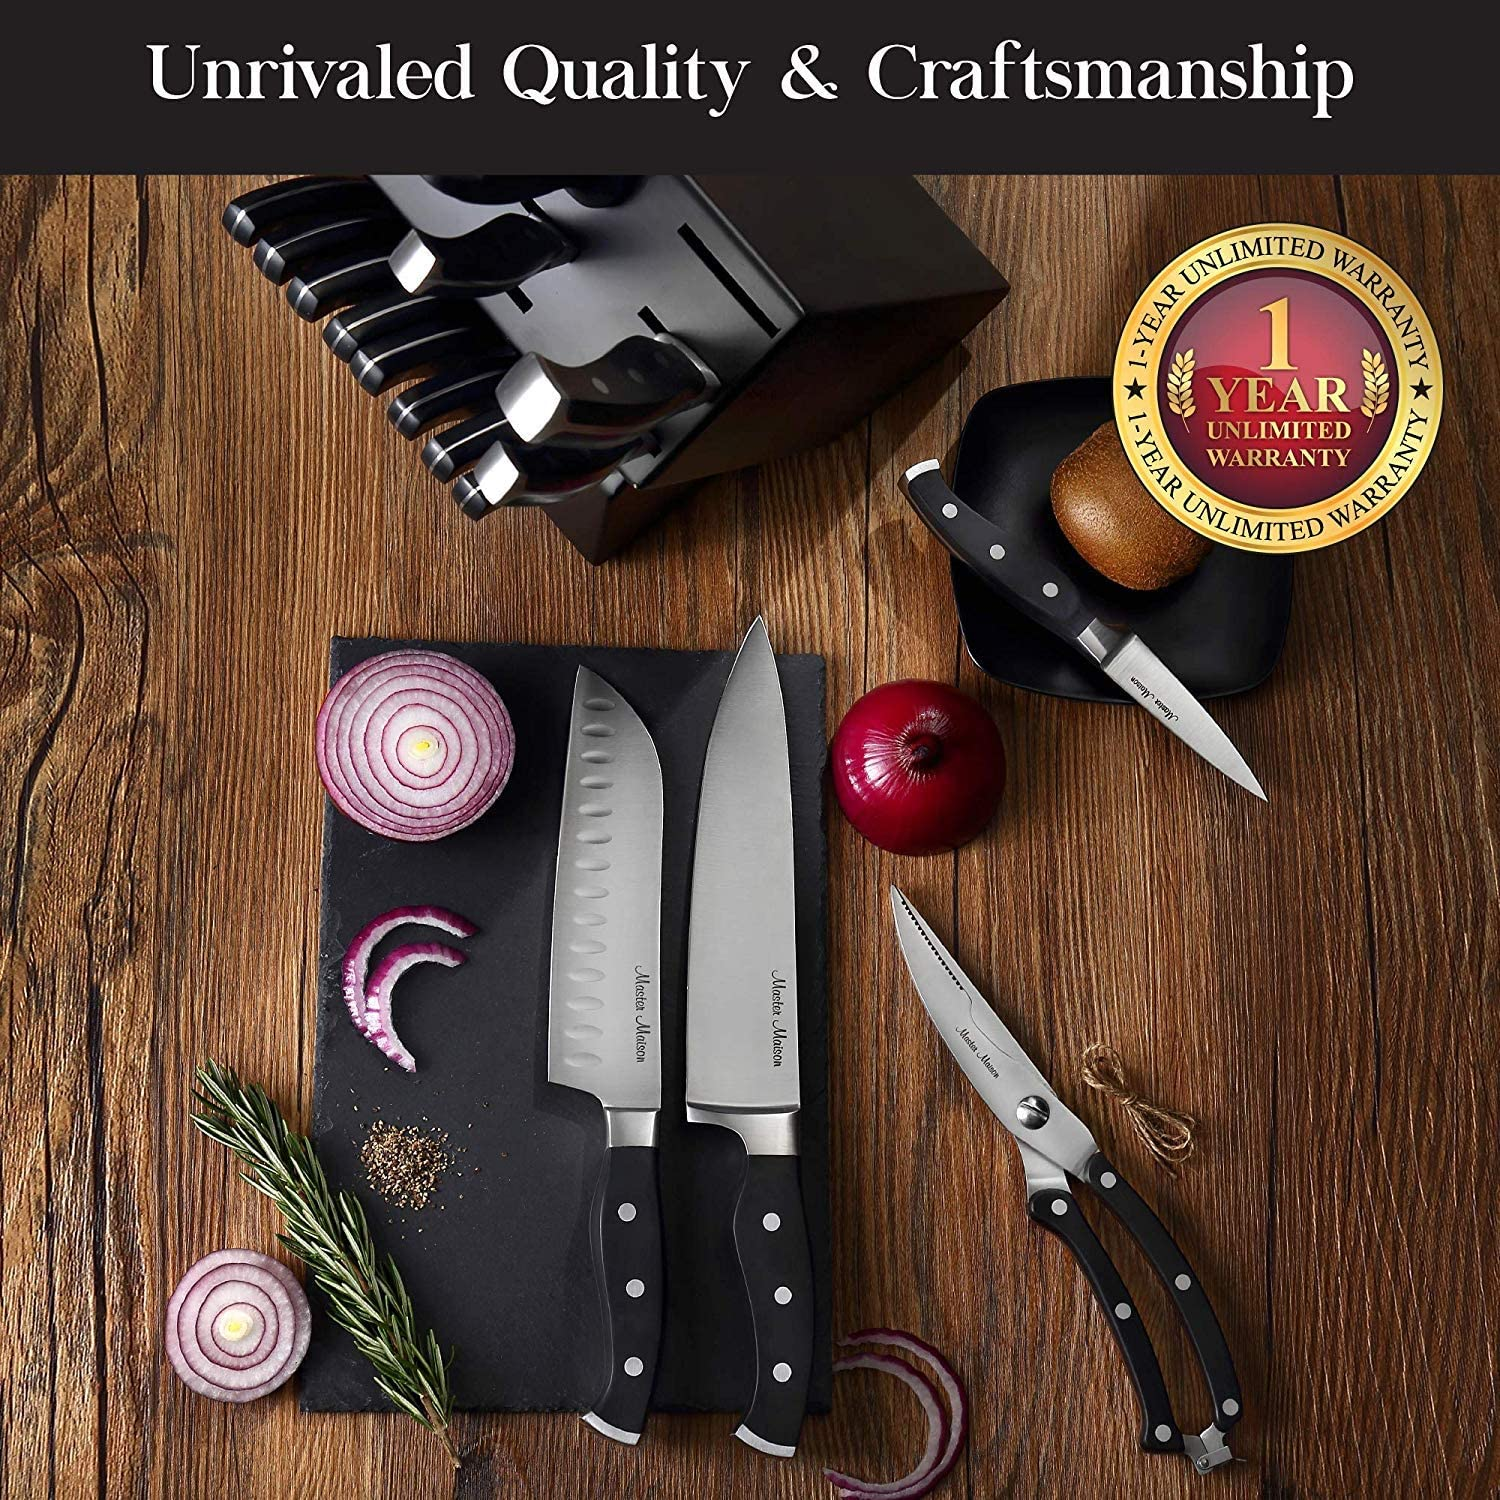 Premium Kitchen Knife Set With Wooden Block | Knife Block Amazon